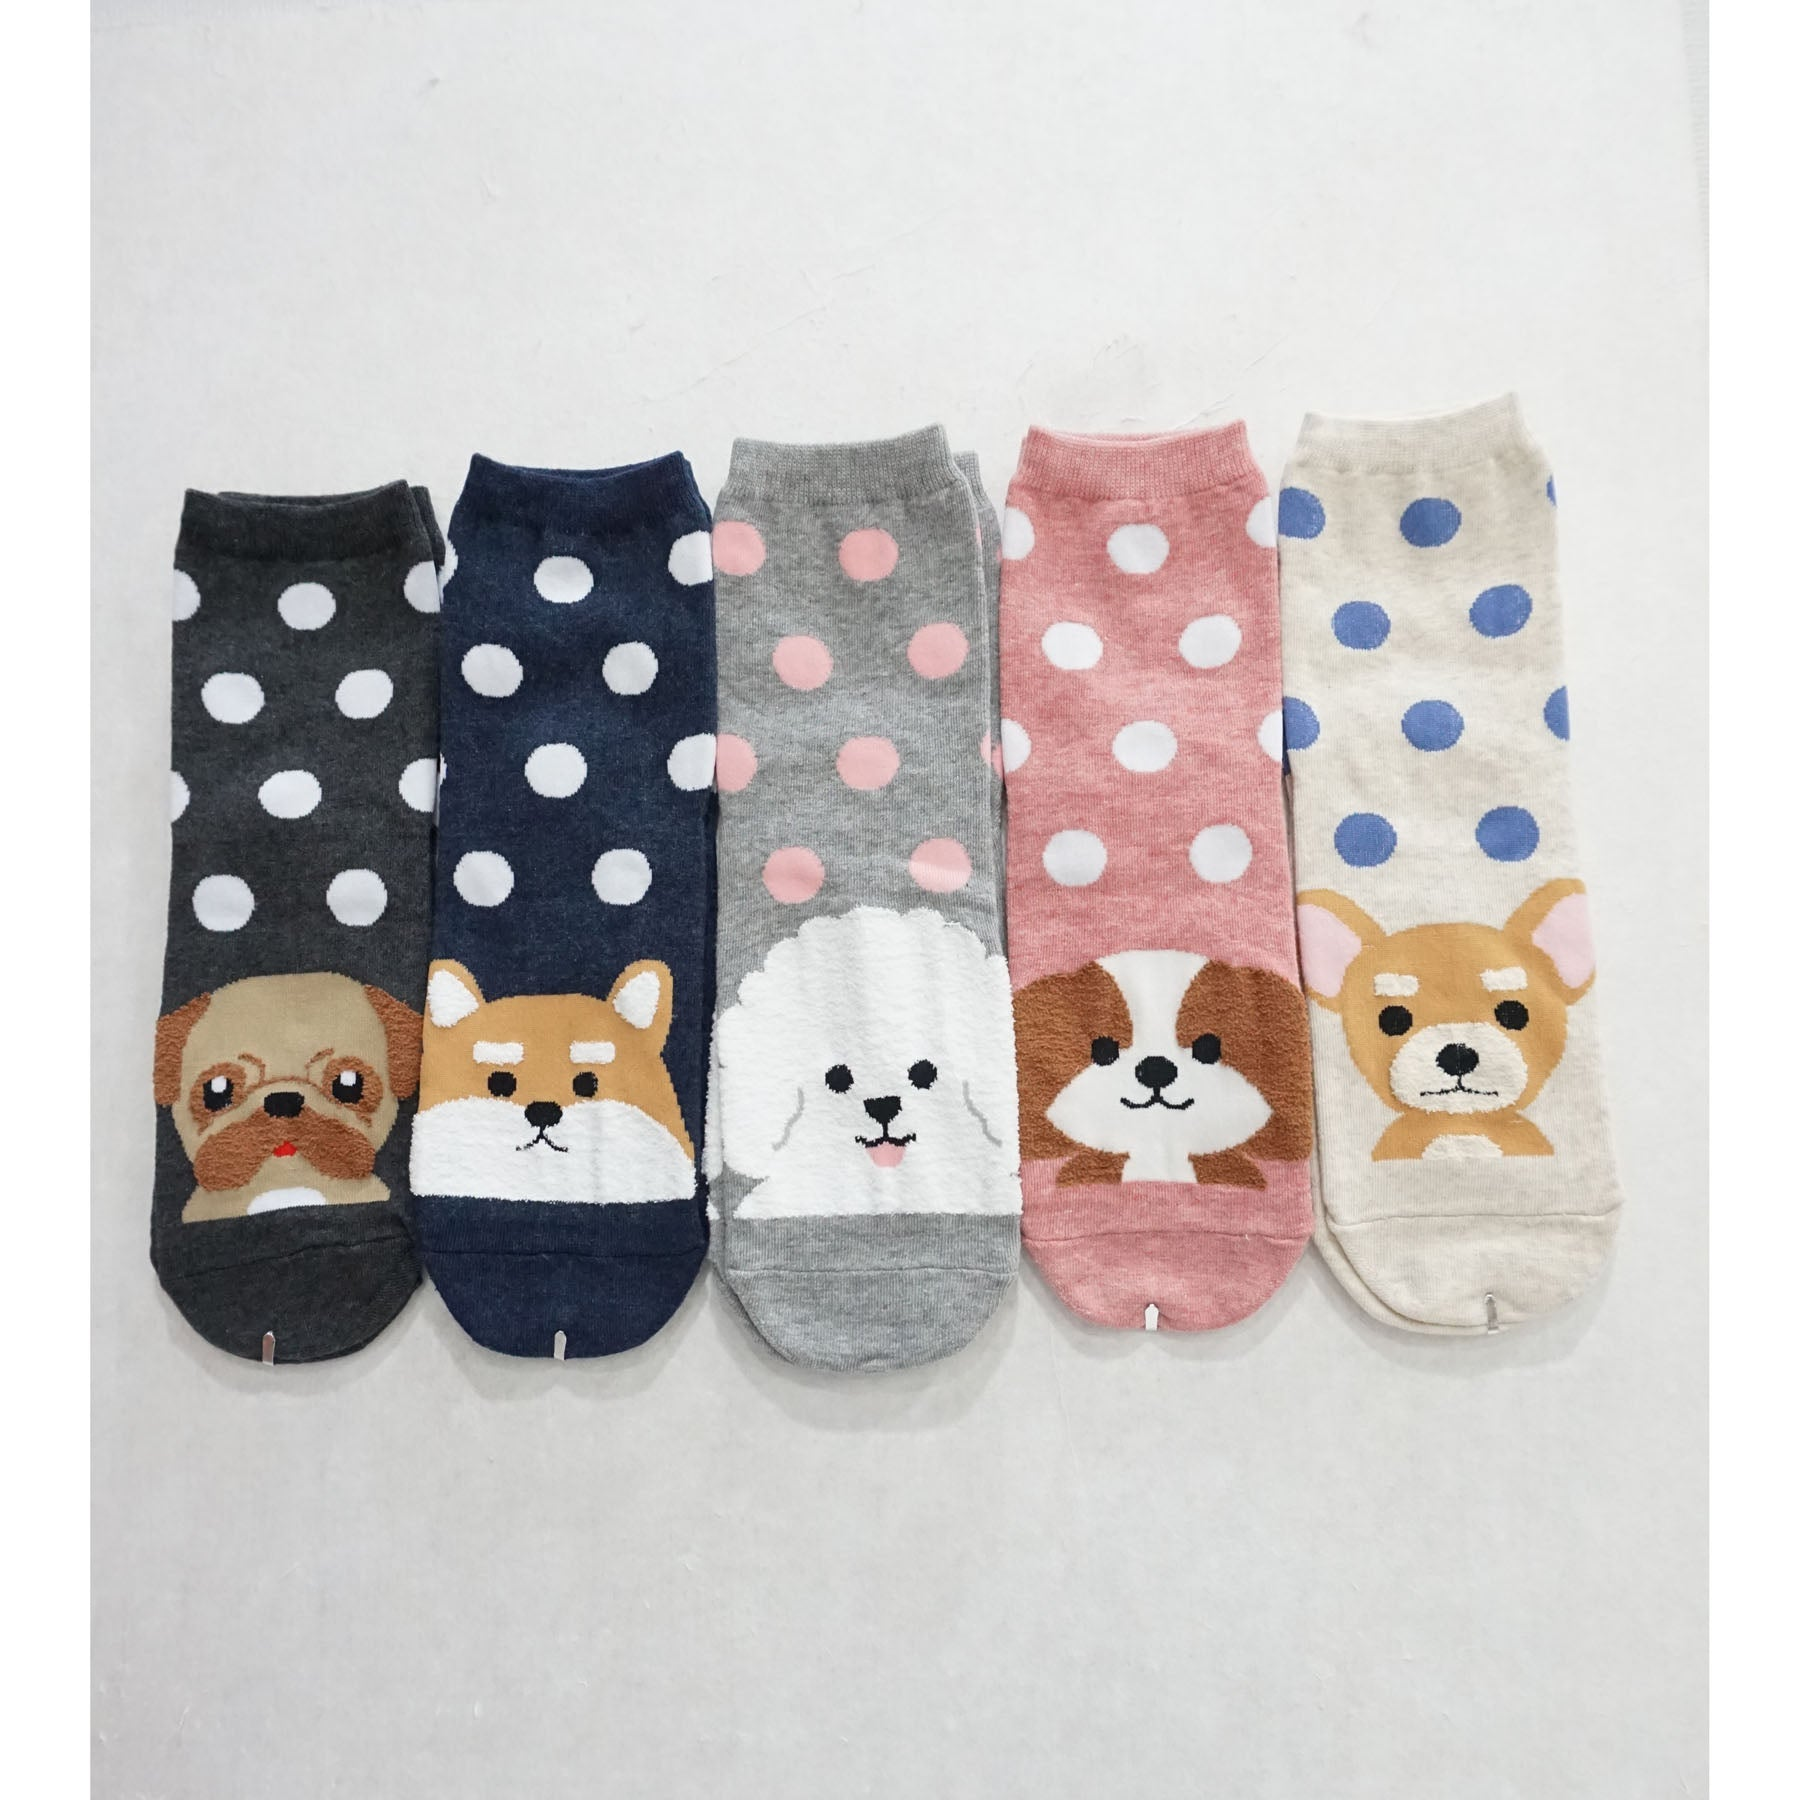 5Pairs Women's Cotton Cute Animal Dog Print Crew Socks